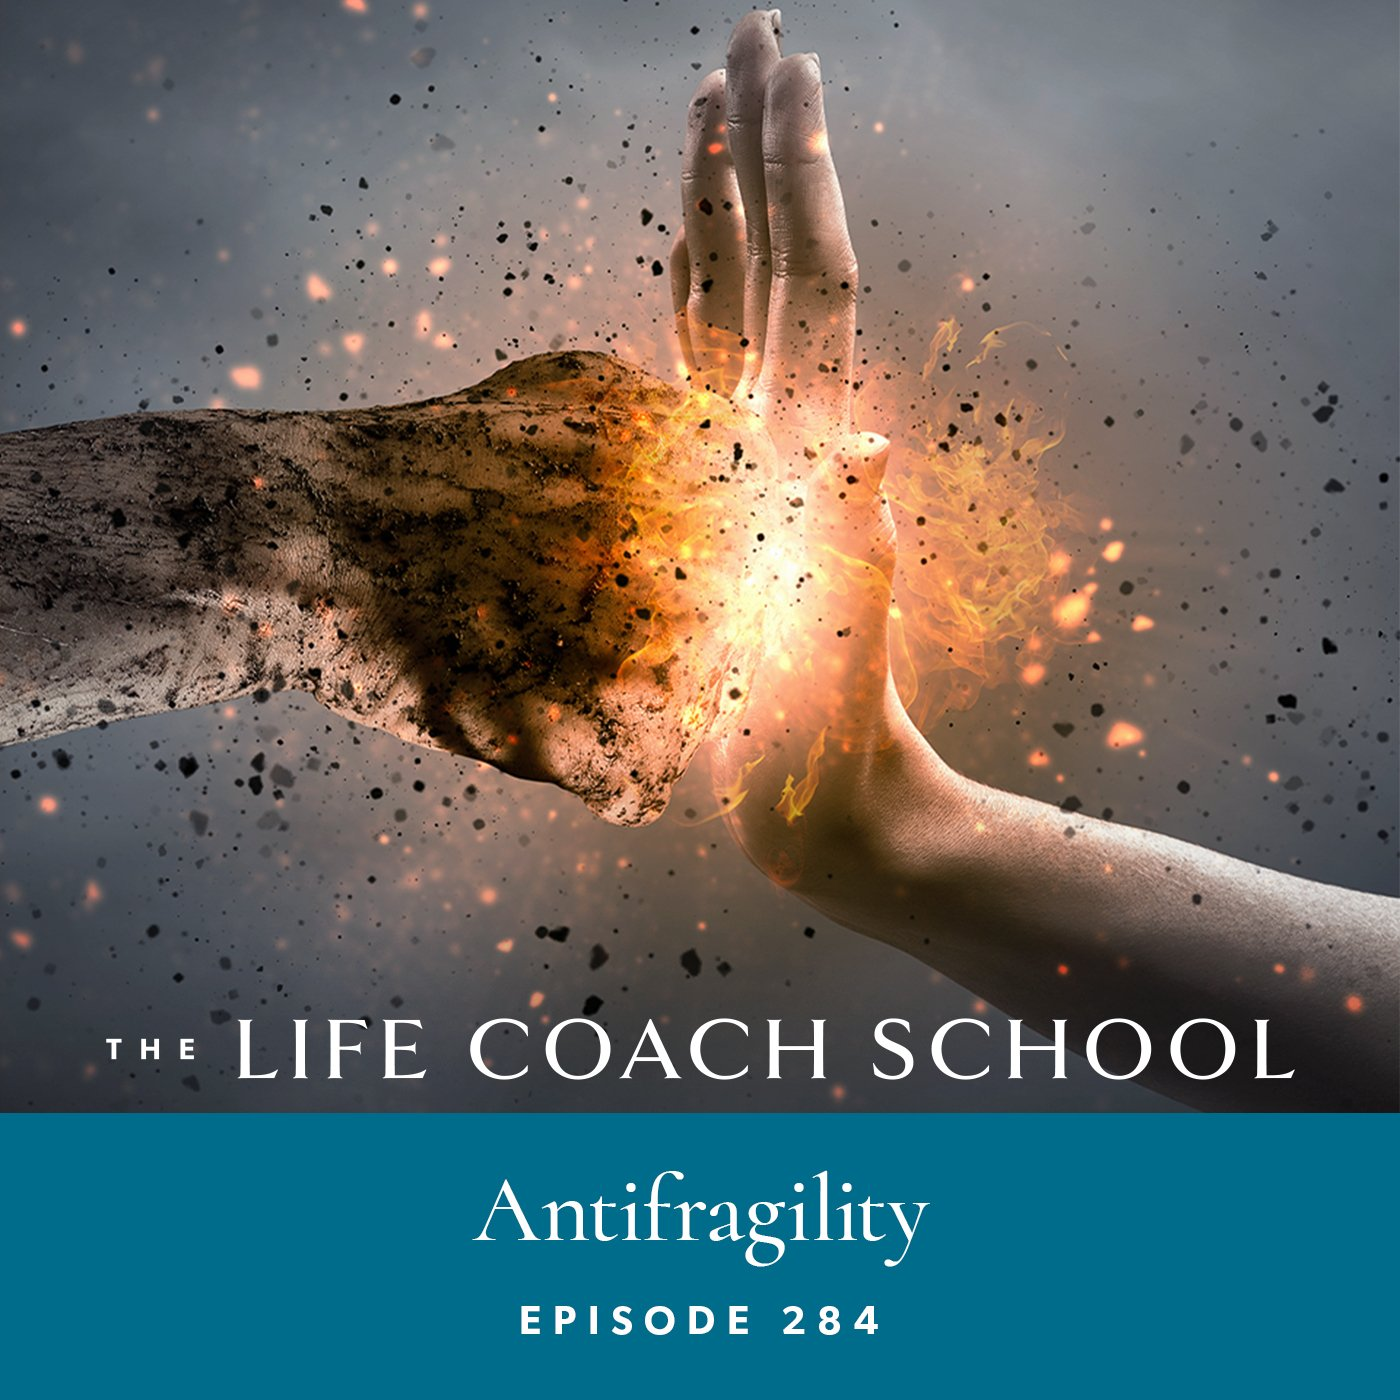 The Life Coach School Podcast with Brooke Castillo | Episode 284 | Antifragile